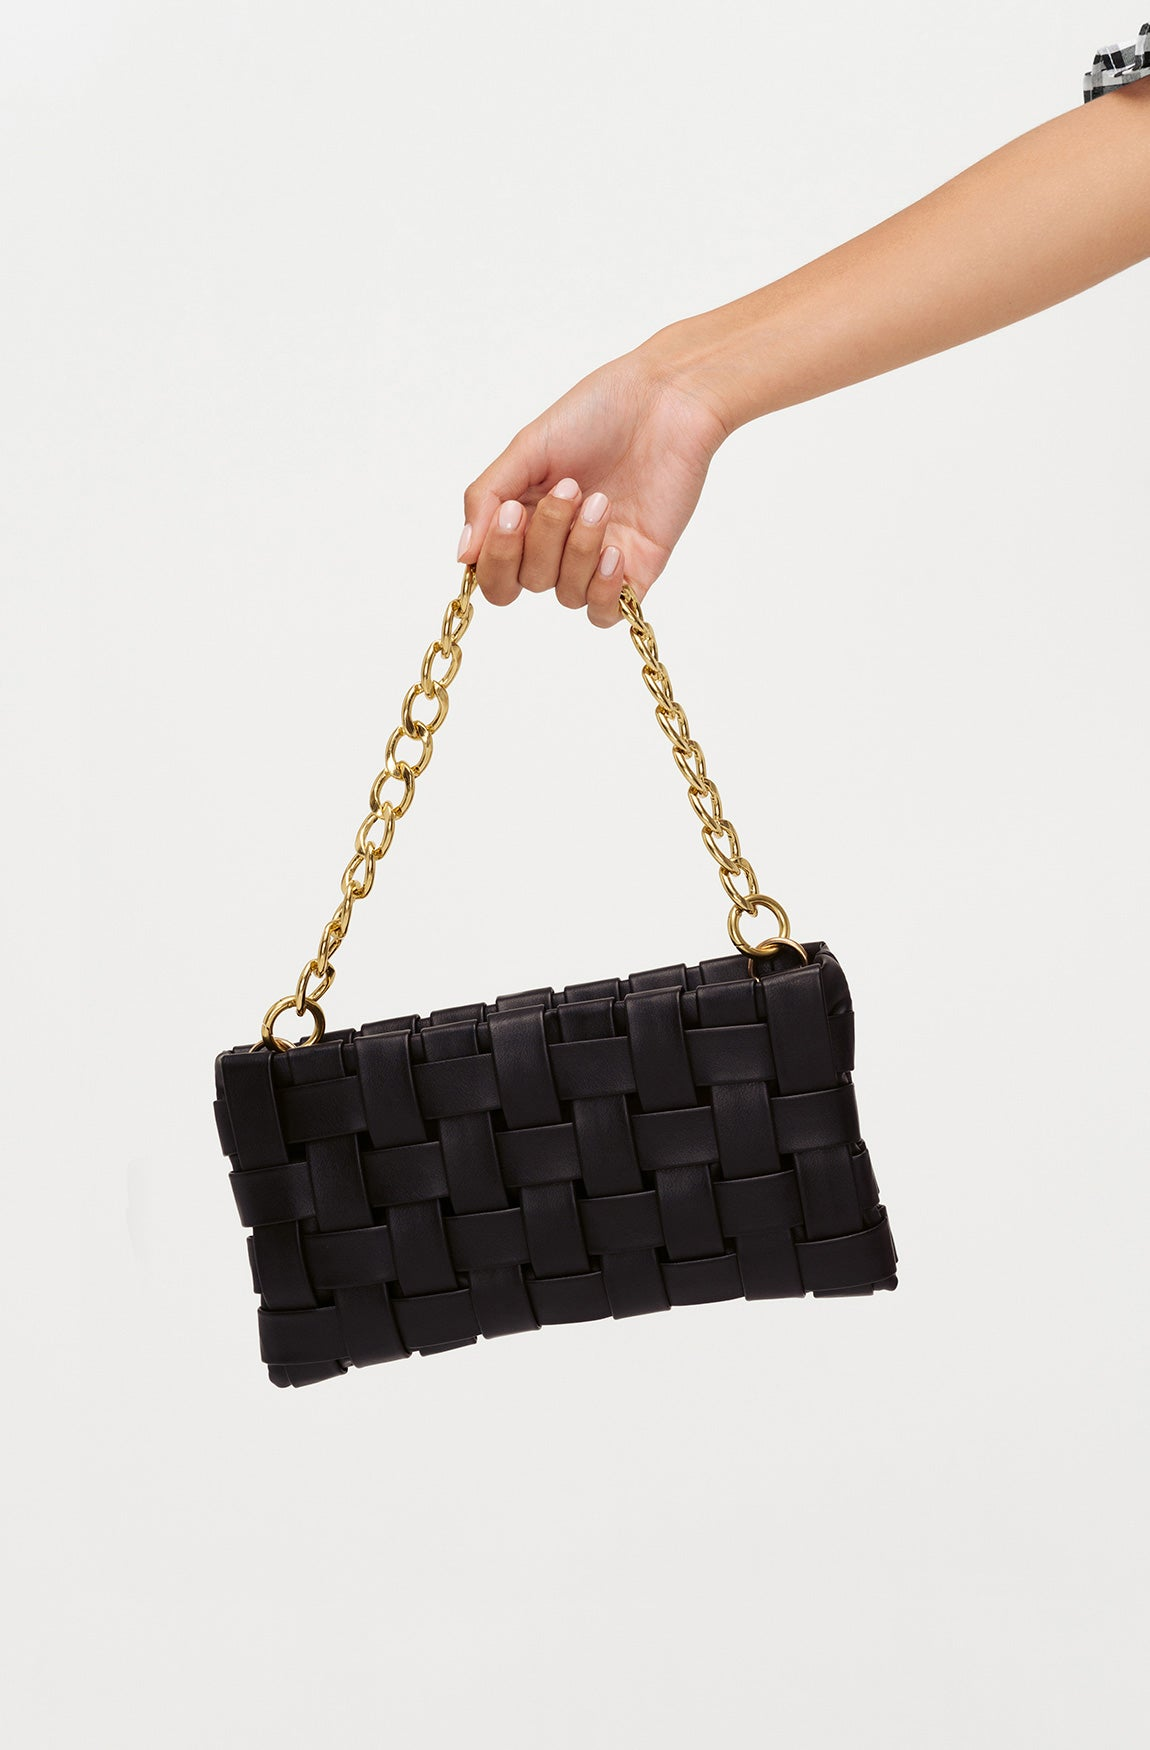 ILLUSION BAG